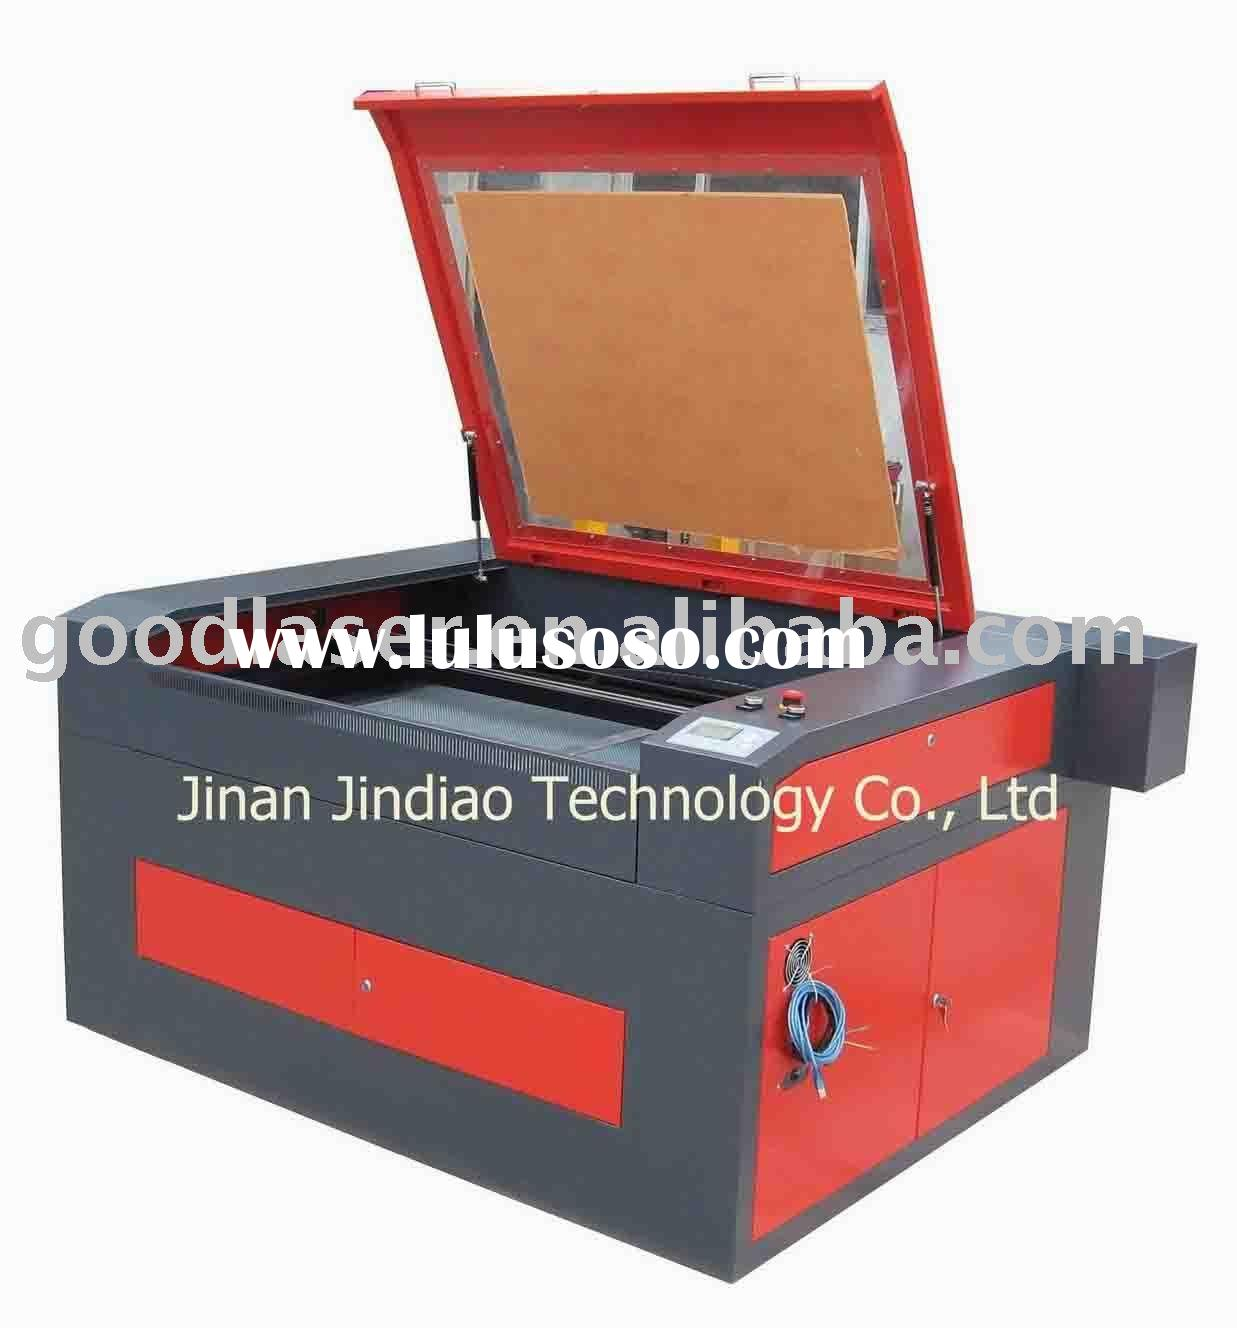 Mirror/Glass Laser Engraving Machine with Rotary Clamp